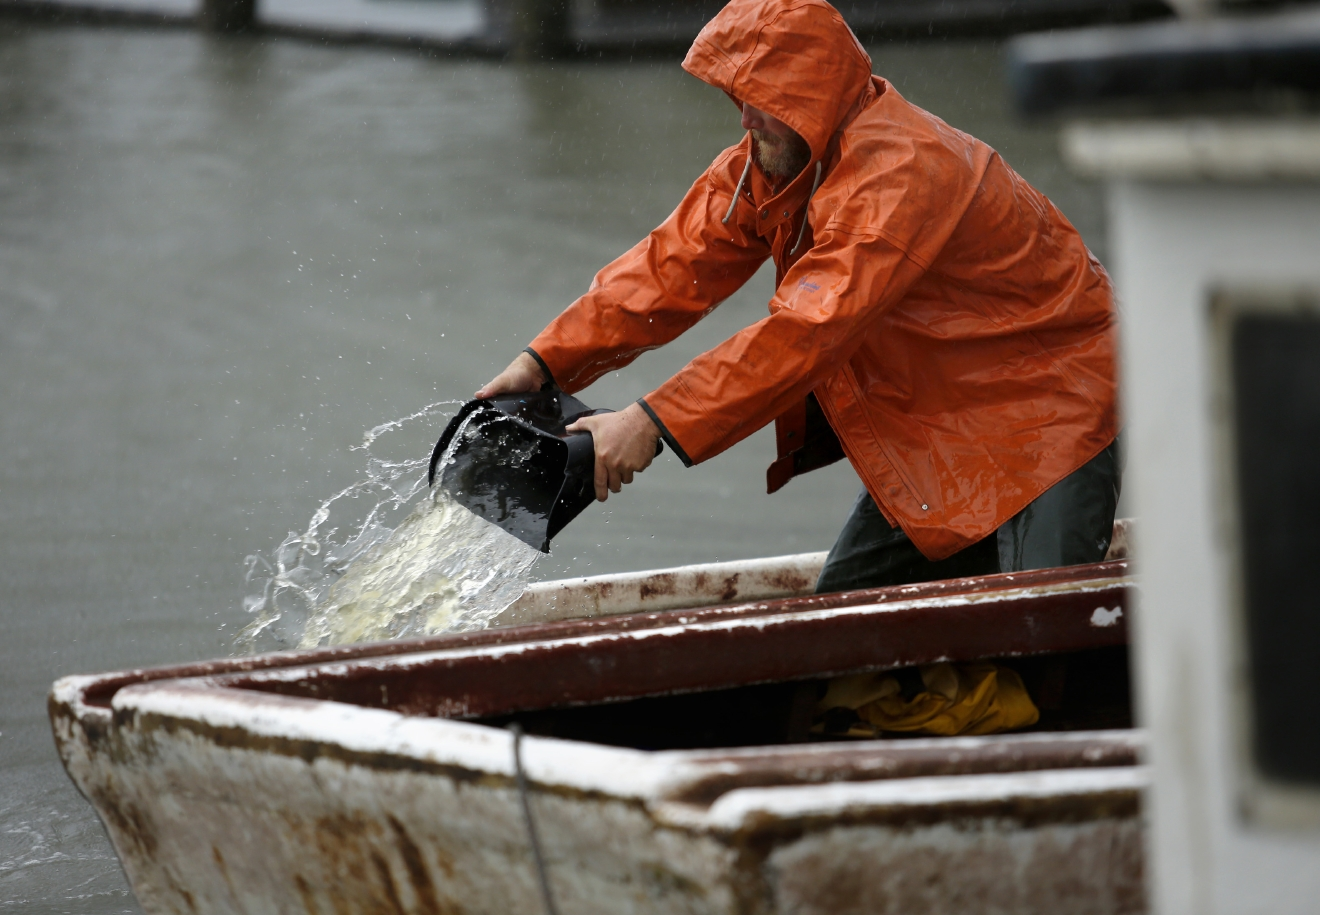 Pound net fisherman Brian Wilson bails water from one of his boats docked on Saturday, Sept.3, 2016 as Tropical Storm Hermine approaches Virginia Beach, Va.  The National Hurricane Center says Tropical Storm Hermine could bring 4 to 7 inches of rain to southeastern Virginia and the Atlantic coastal portion of Maryland as well as 1 to 4 inches of rain over southern Delaware, southern and eastern New Jersey and Long Island through Monday morning.  (Stephen M. Katz/The Virginian-Pilot via AP)